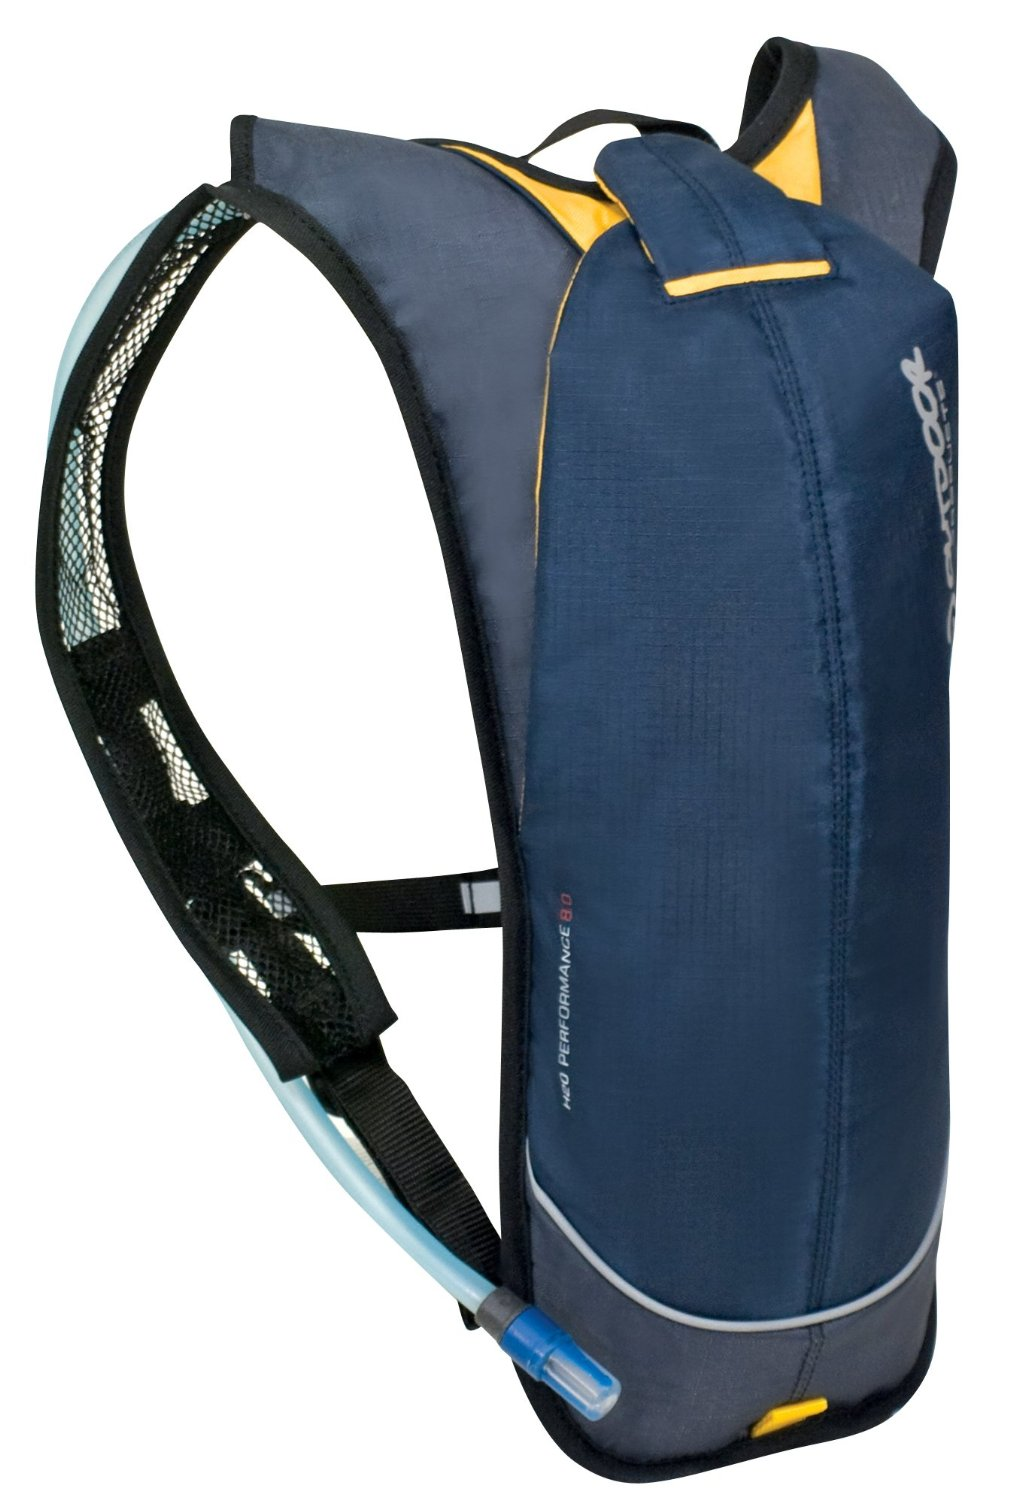 Amazon.com : Outdoor Products H20 Performance Hydration Pack (Palace Blue) : Hiking Hydration Packs